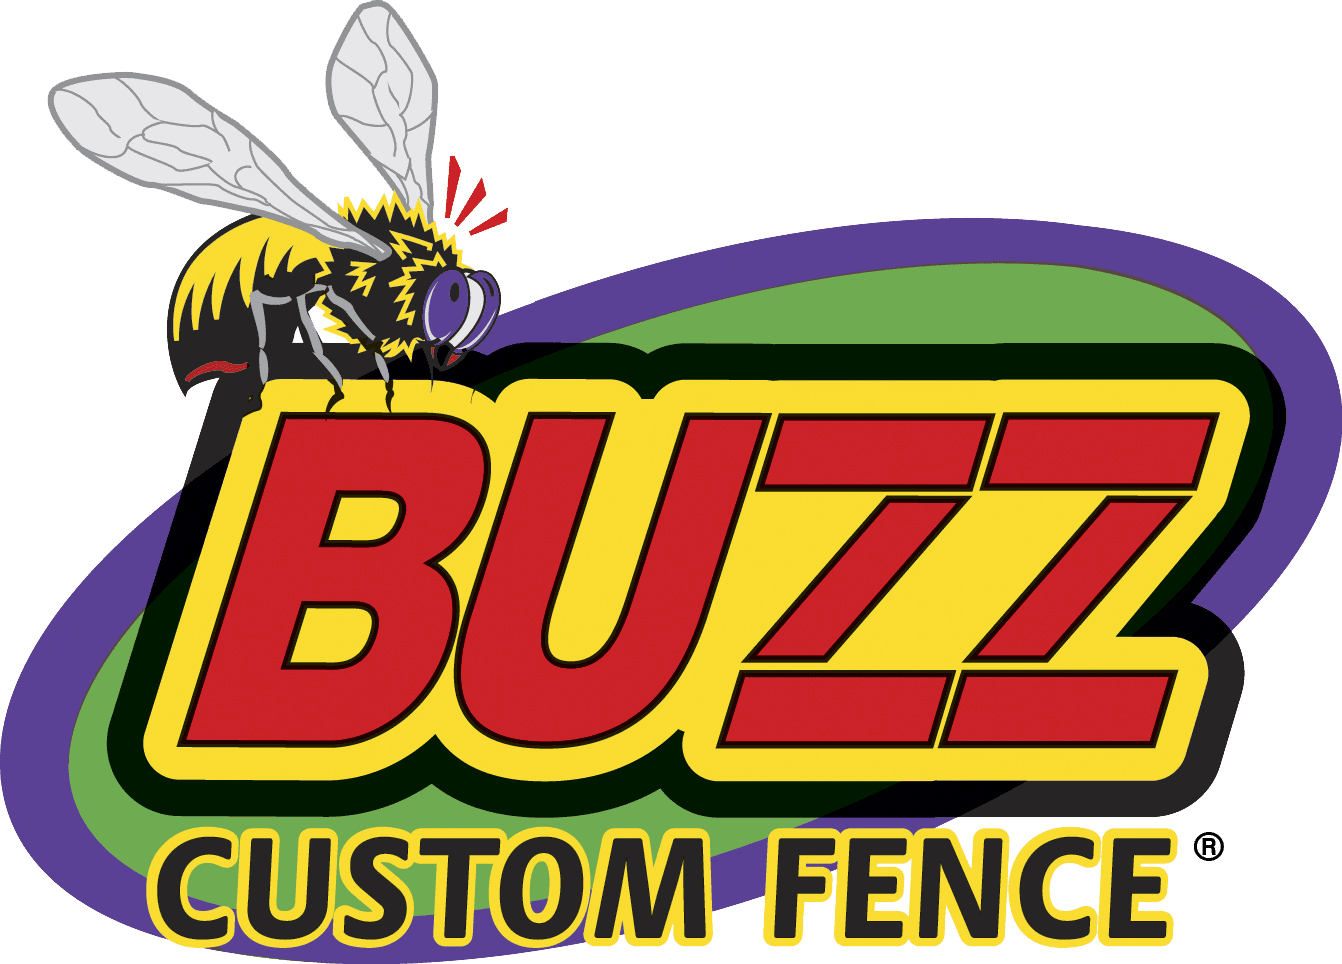 buzz custom fences logo